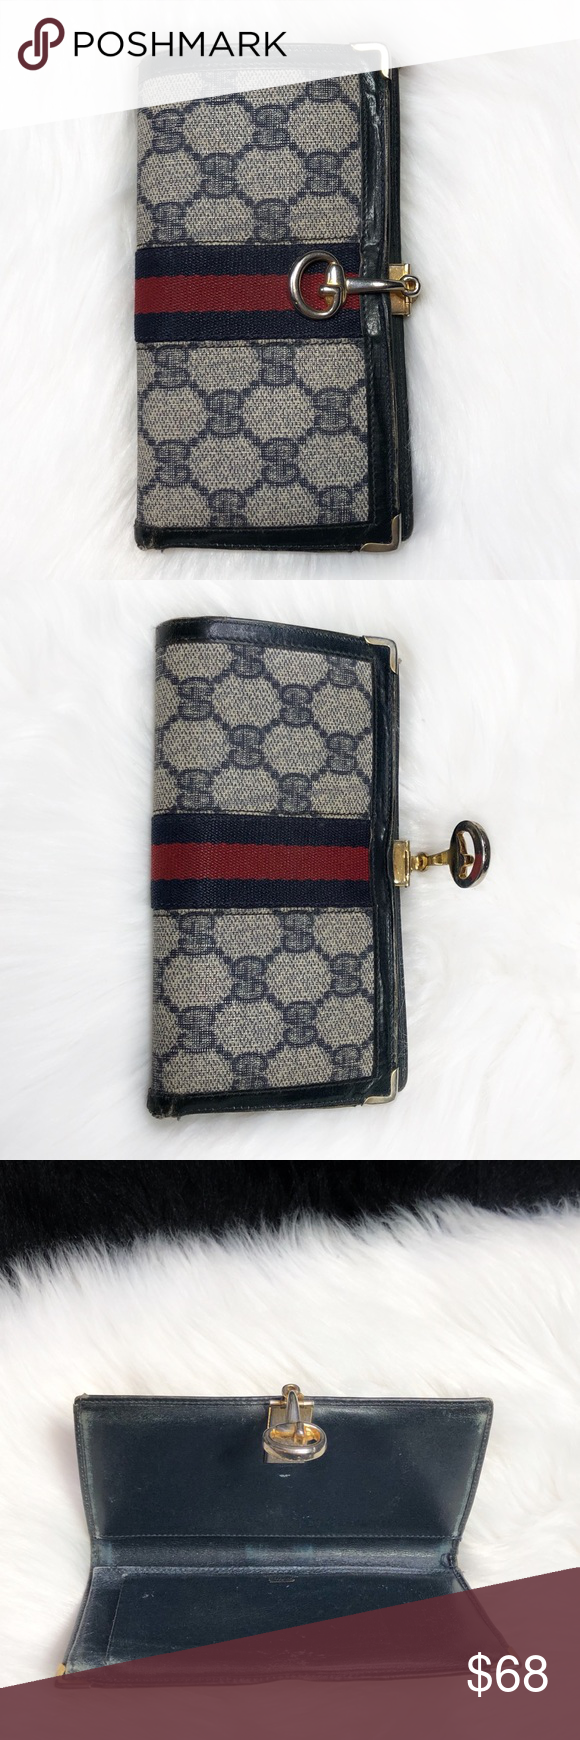 565a603bd7d4 Gucci Vintage Checkbook Holder Vintage Gucci coated canvas checkbook holder.  Navy guccisima print with Gucci signature stripe and hinge horsebit clasp.